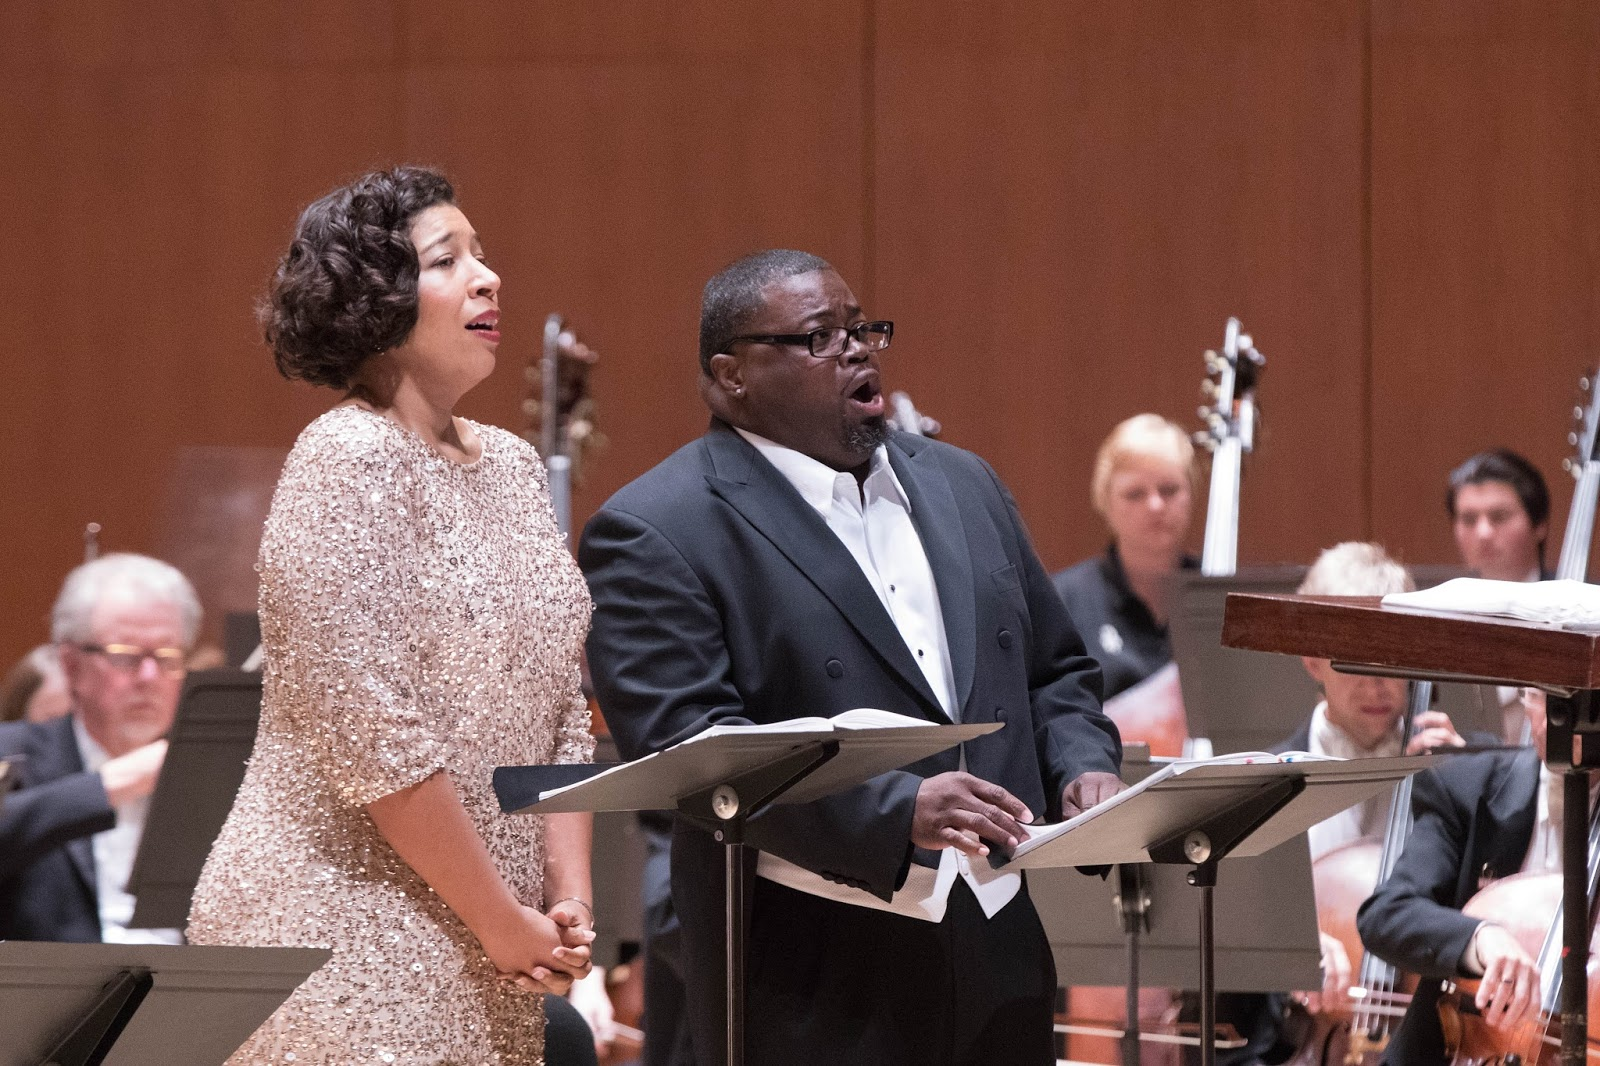 IN PERFORMANCE: soprano MARY ELIZABETH WILLIAMS as Desdemona (left) and tenor RUSSELL THOMAS as Otello (right) in Atlanta Symphony Orchestra's concert performance of Giuseppe Verdi's OTELLO, 7 October 2017 [Photo by Jeff Roffman, © by Atlanta Symphony Orchestra]